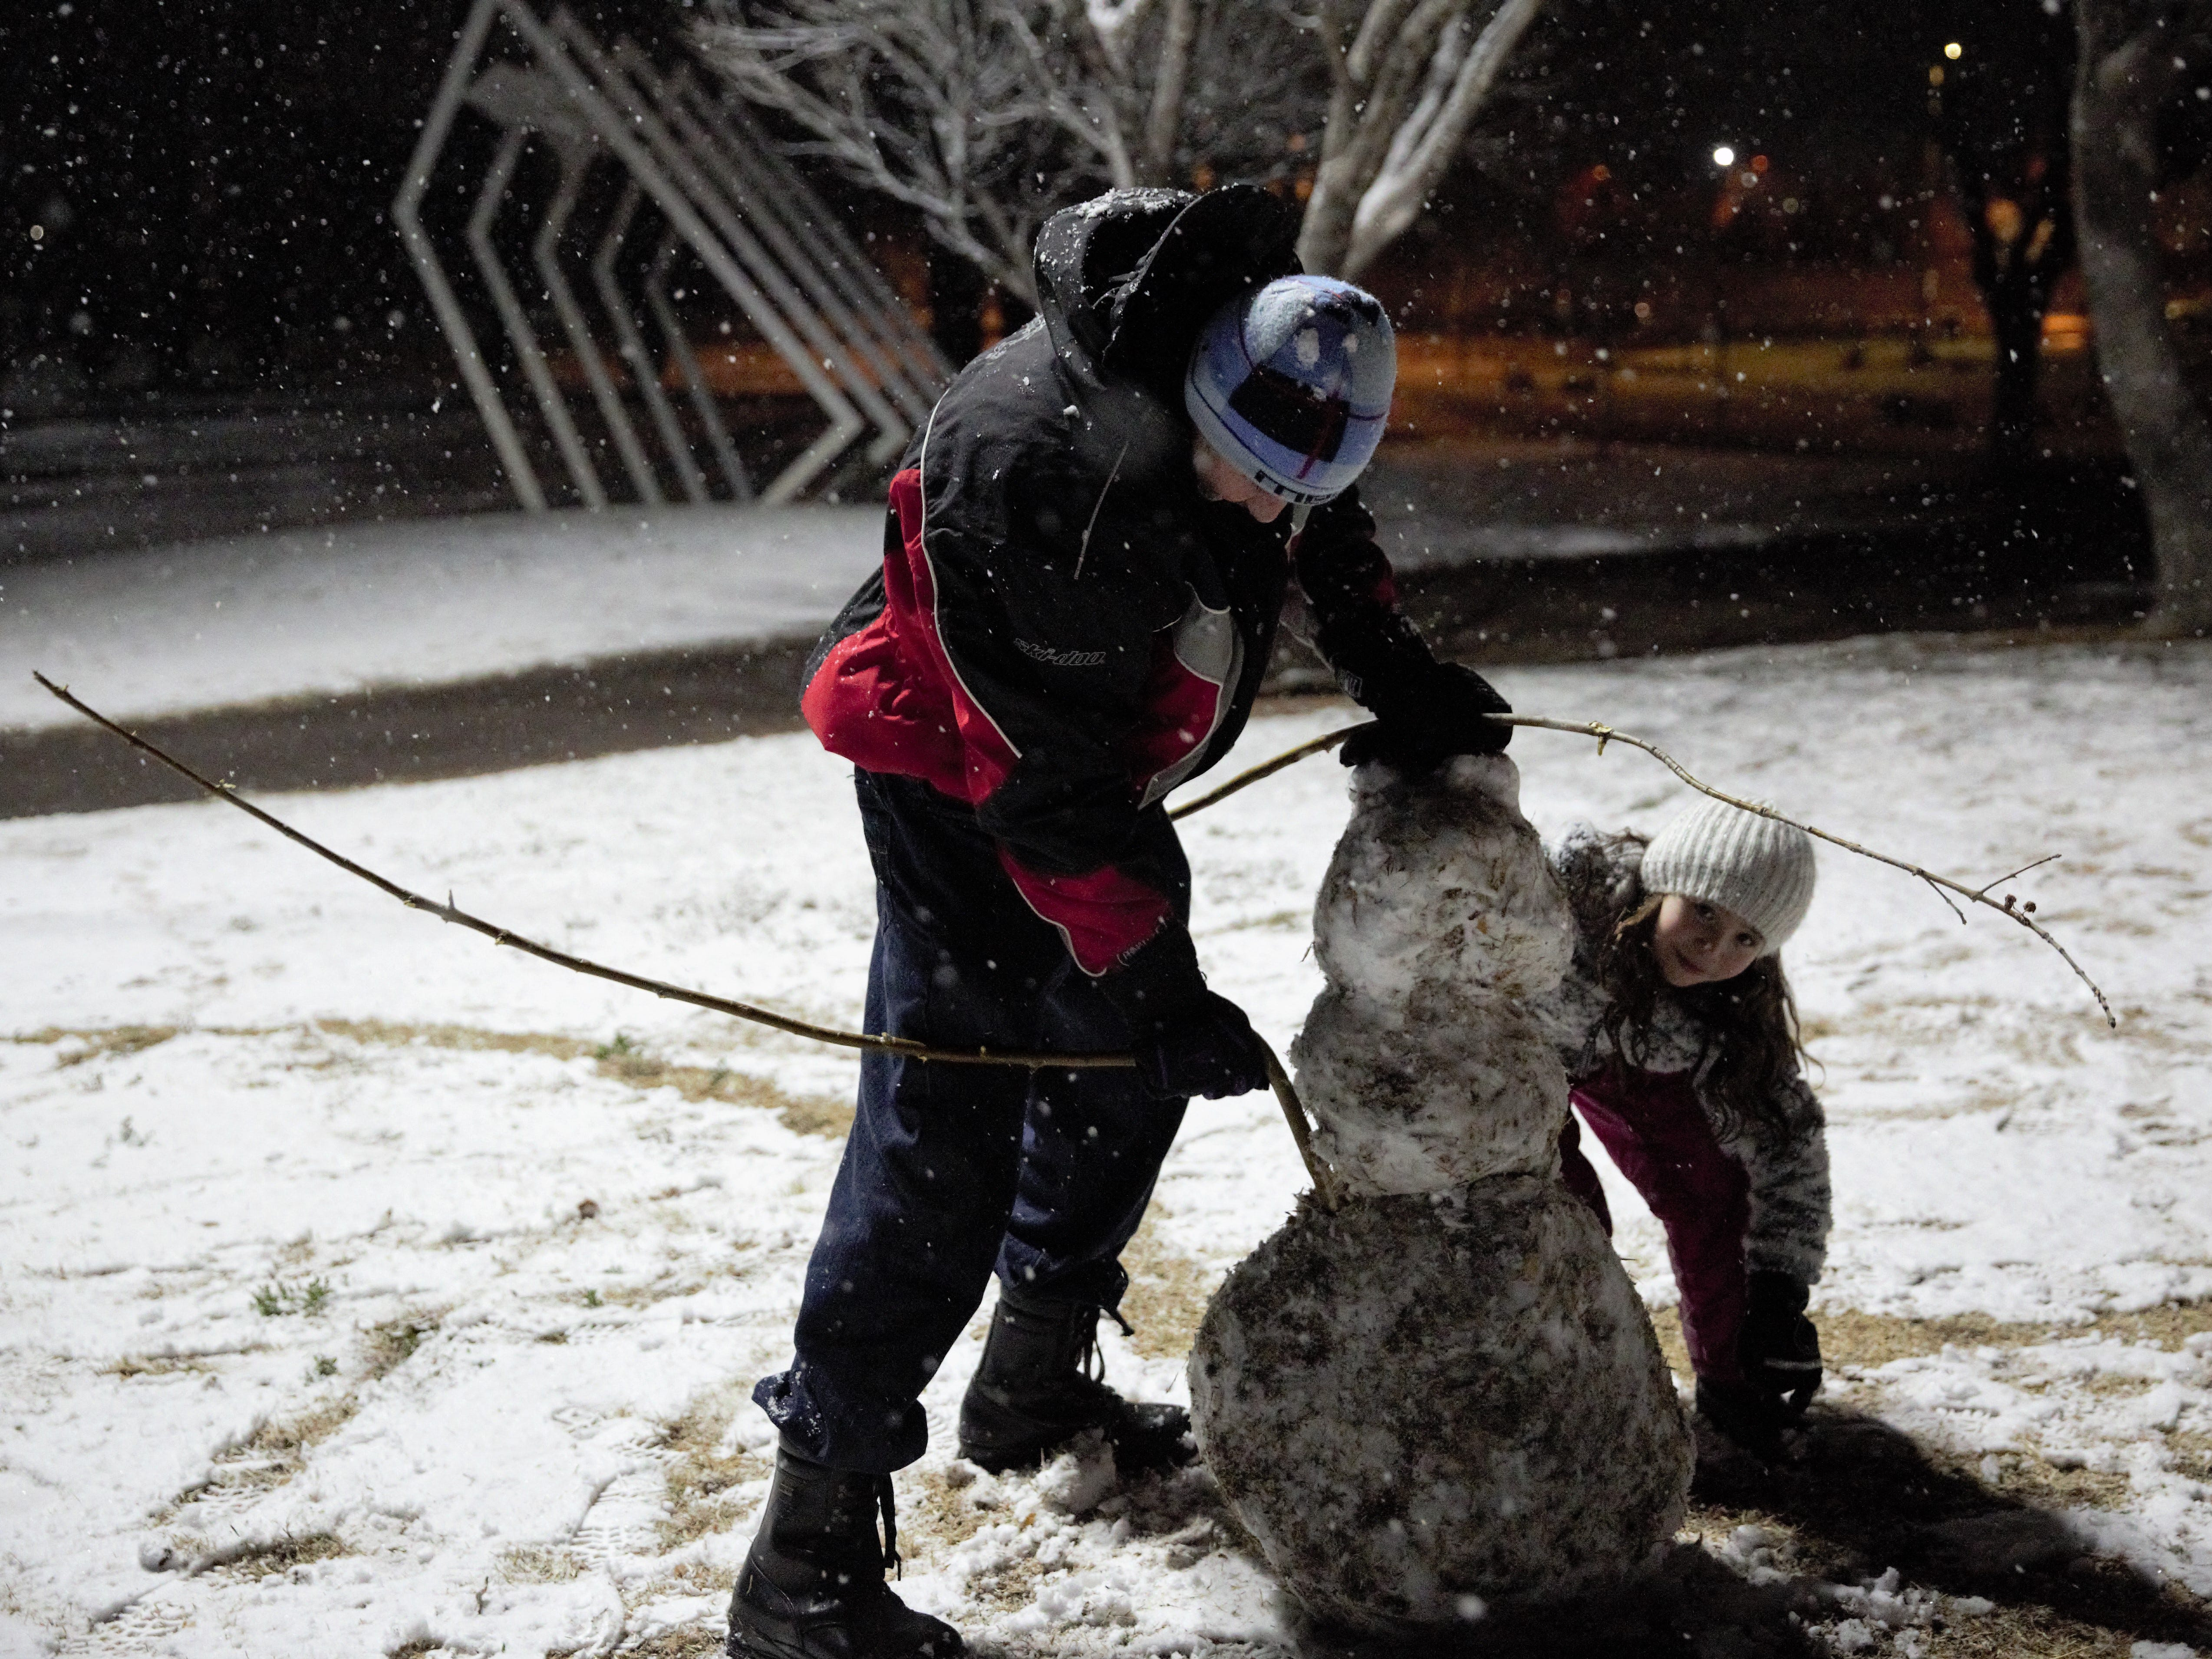 """James Chavez of Las Cruces installs a branch for a snowman's arm, as his daughter, Maria Chavez, 9, assists. The two took advantage of evening snowfall on Wednesday, Jan. 2, 2019, to play in the snow at Young Park. """"You only live once; it's important to get out here and have some fun,"""" James Chavez says."""